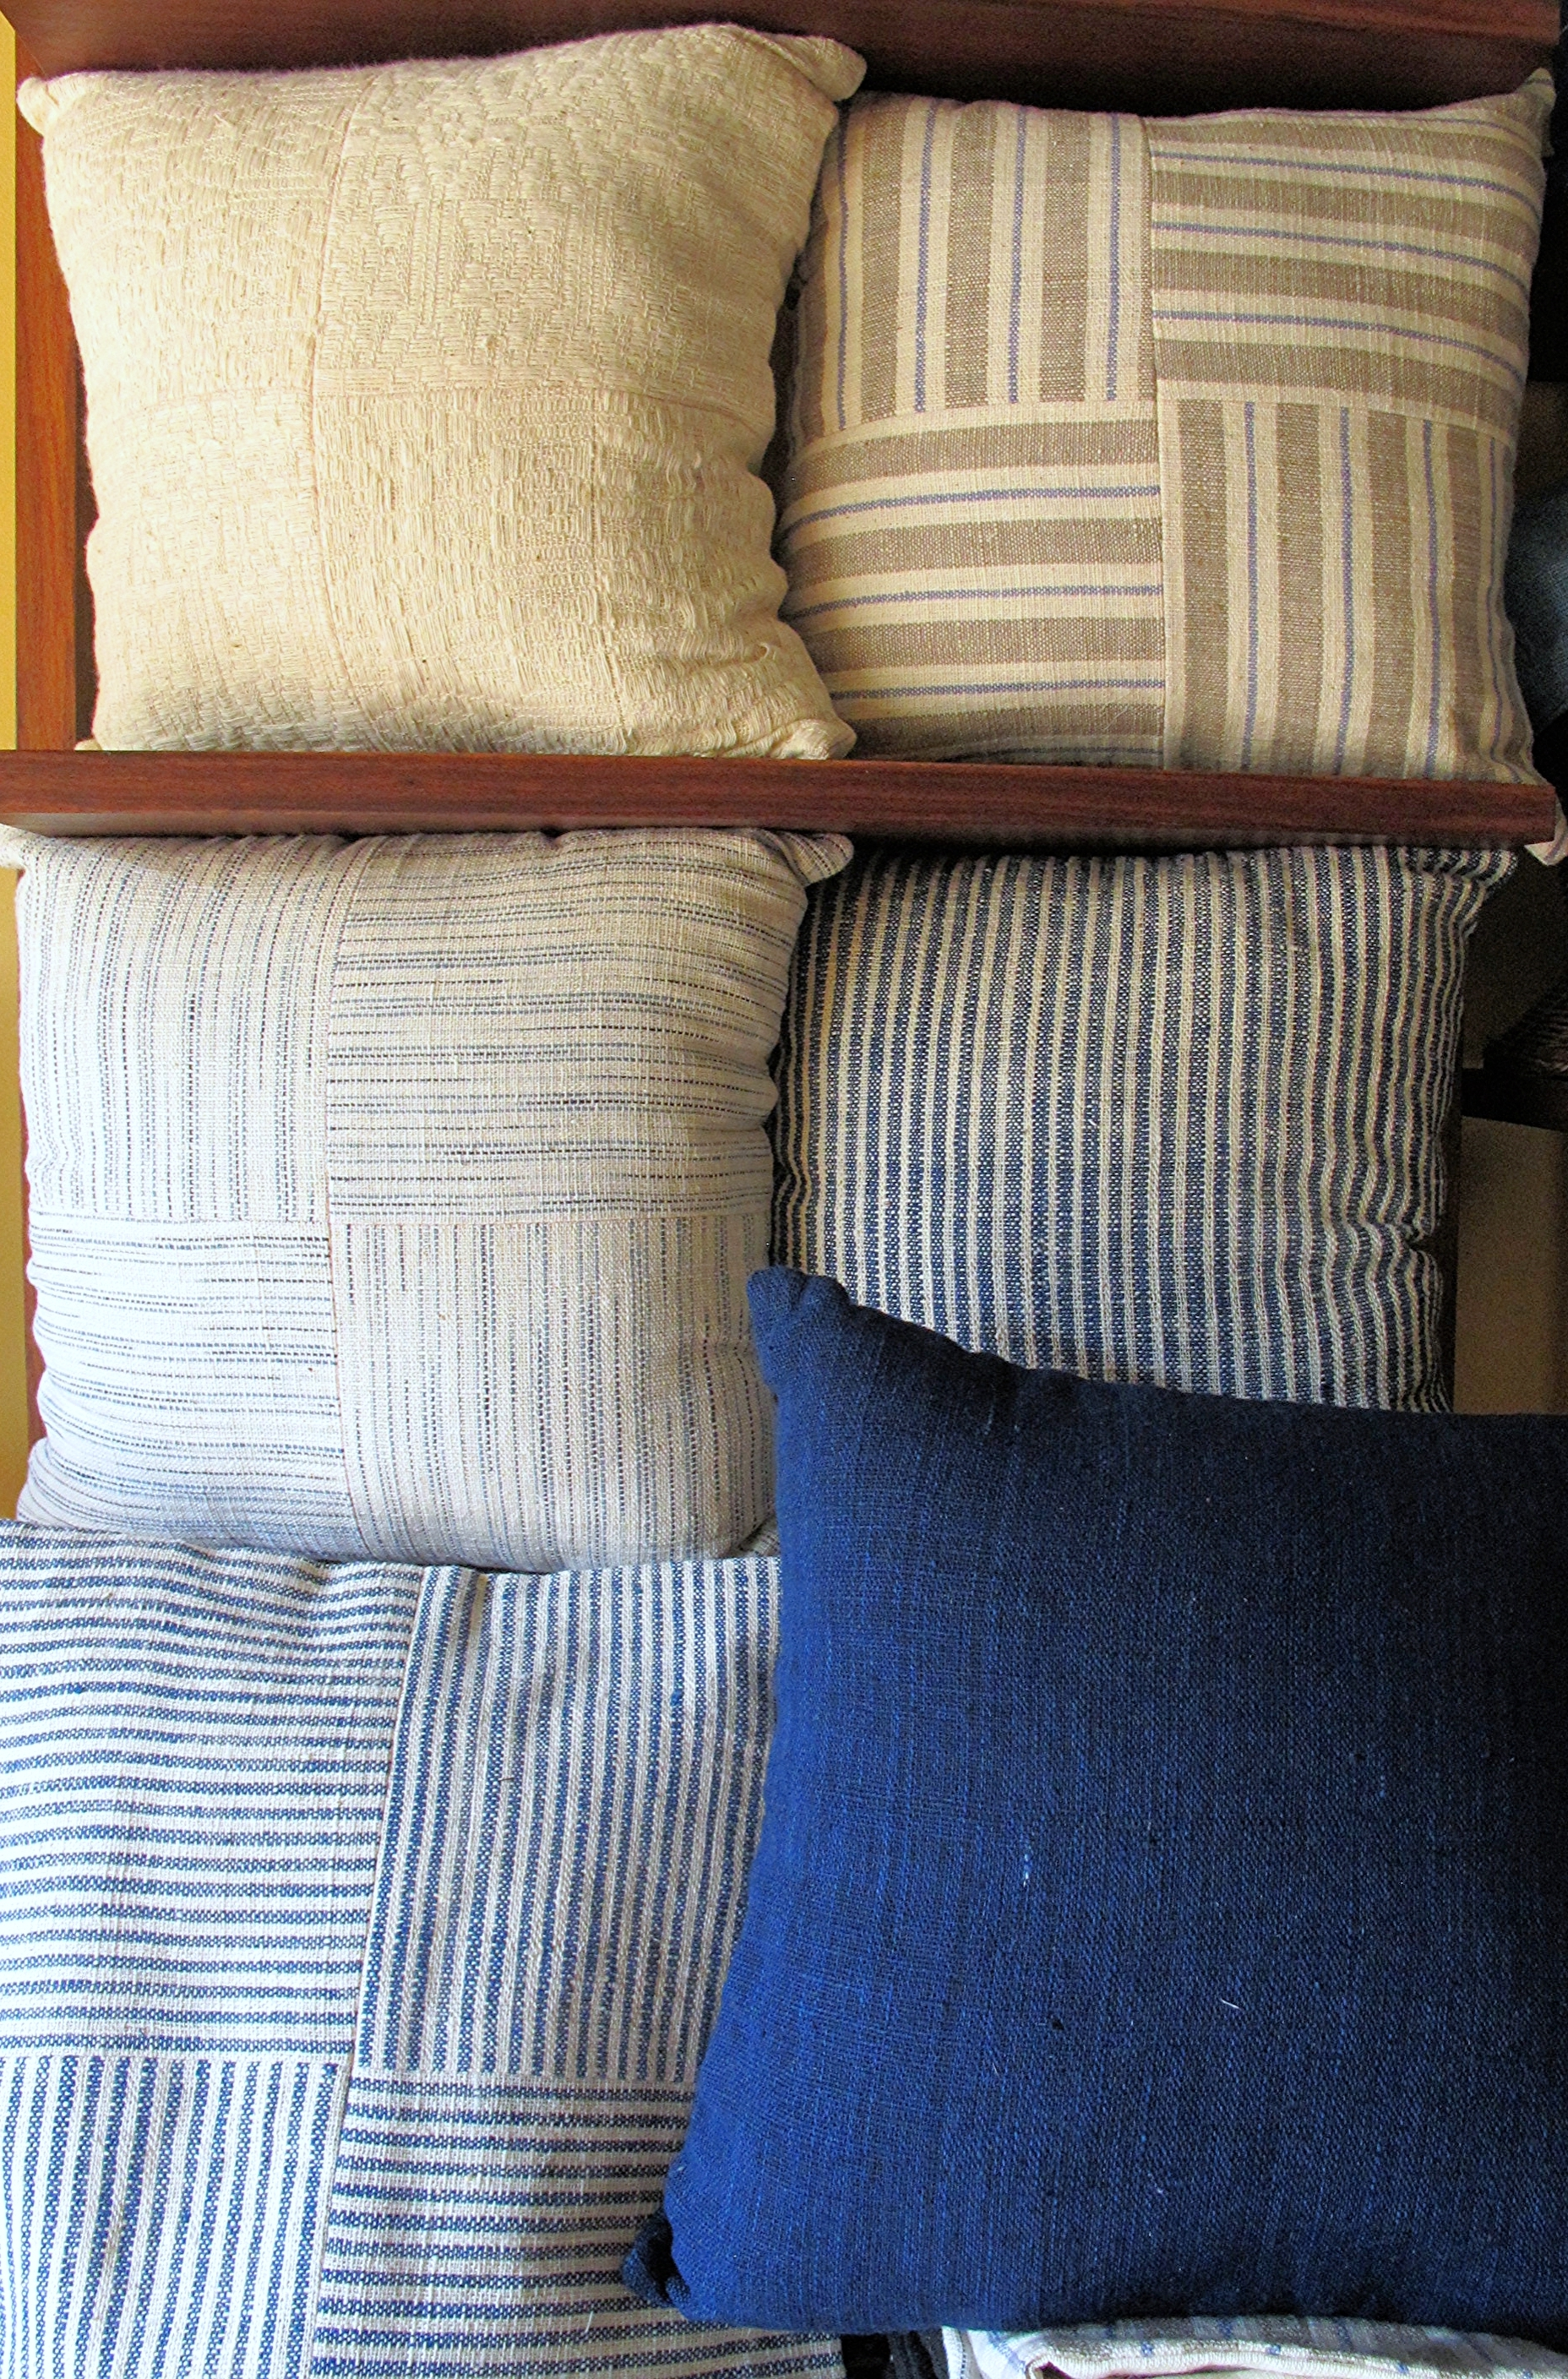 [Natural colors in peach yellow and indigo blue, in easy even stripes, cozy and soft squeezed together. Dreamy cushion covers handwoven by women of the Tai Leu ethnic group in Banayan village Laos. Also curated by  Ma Te Sai .